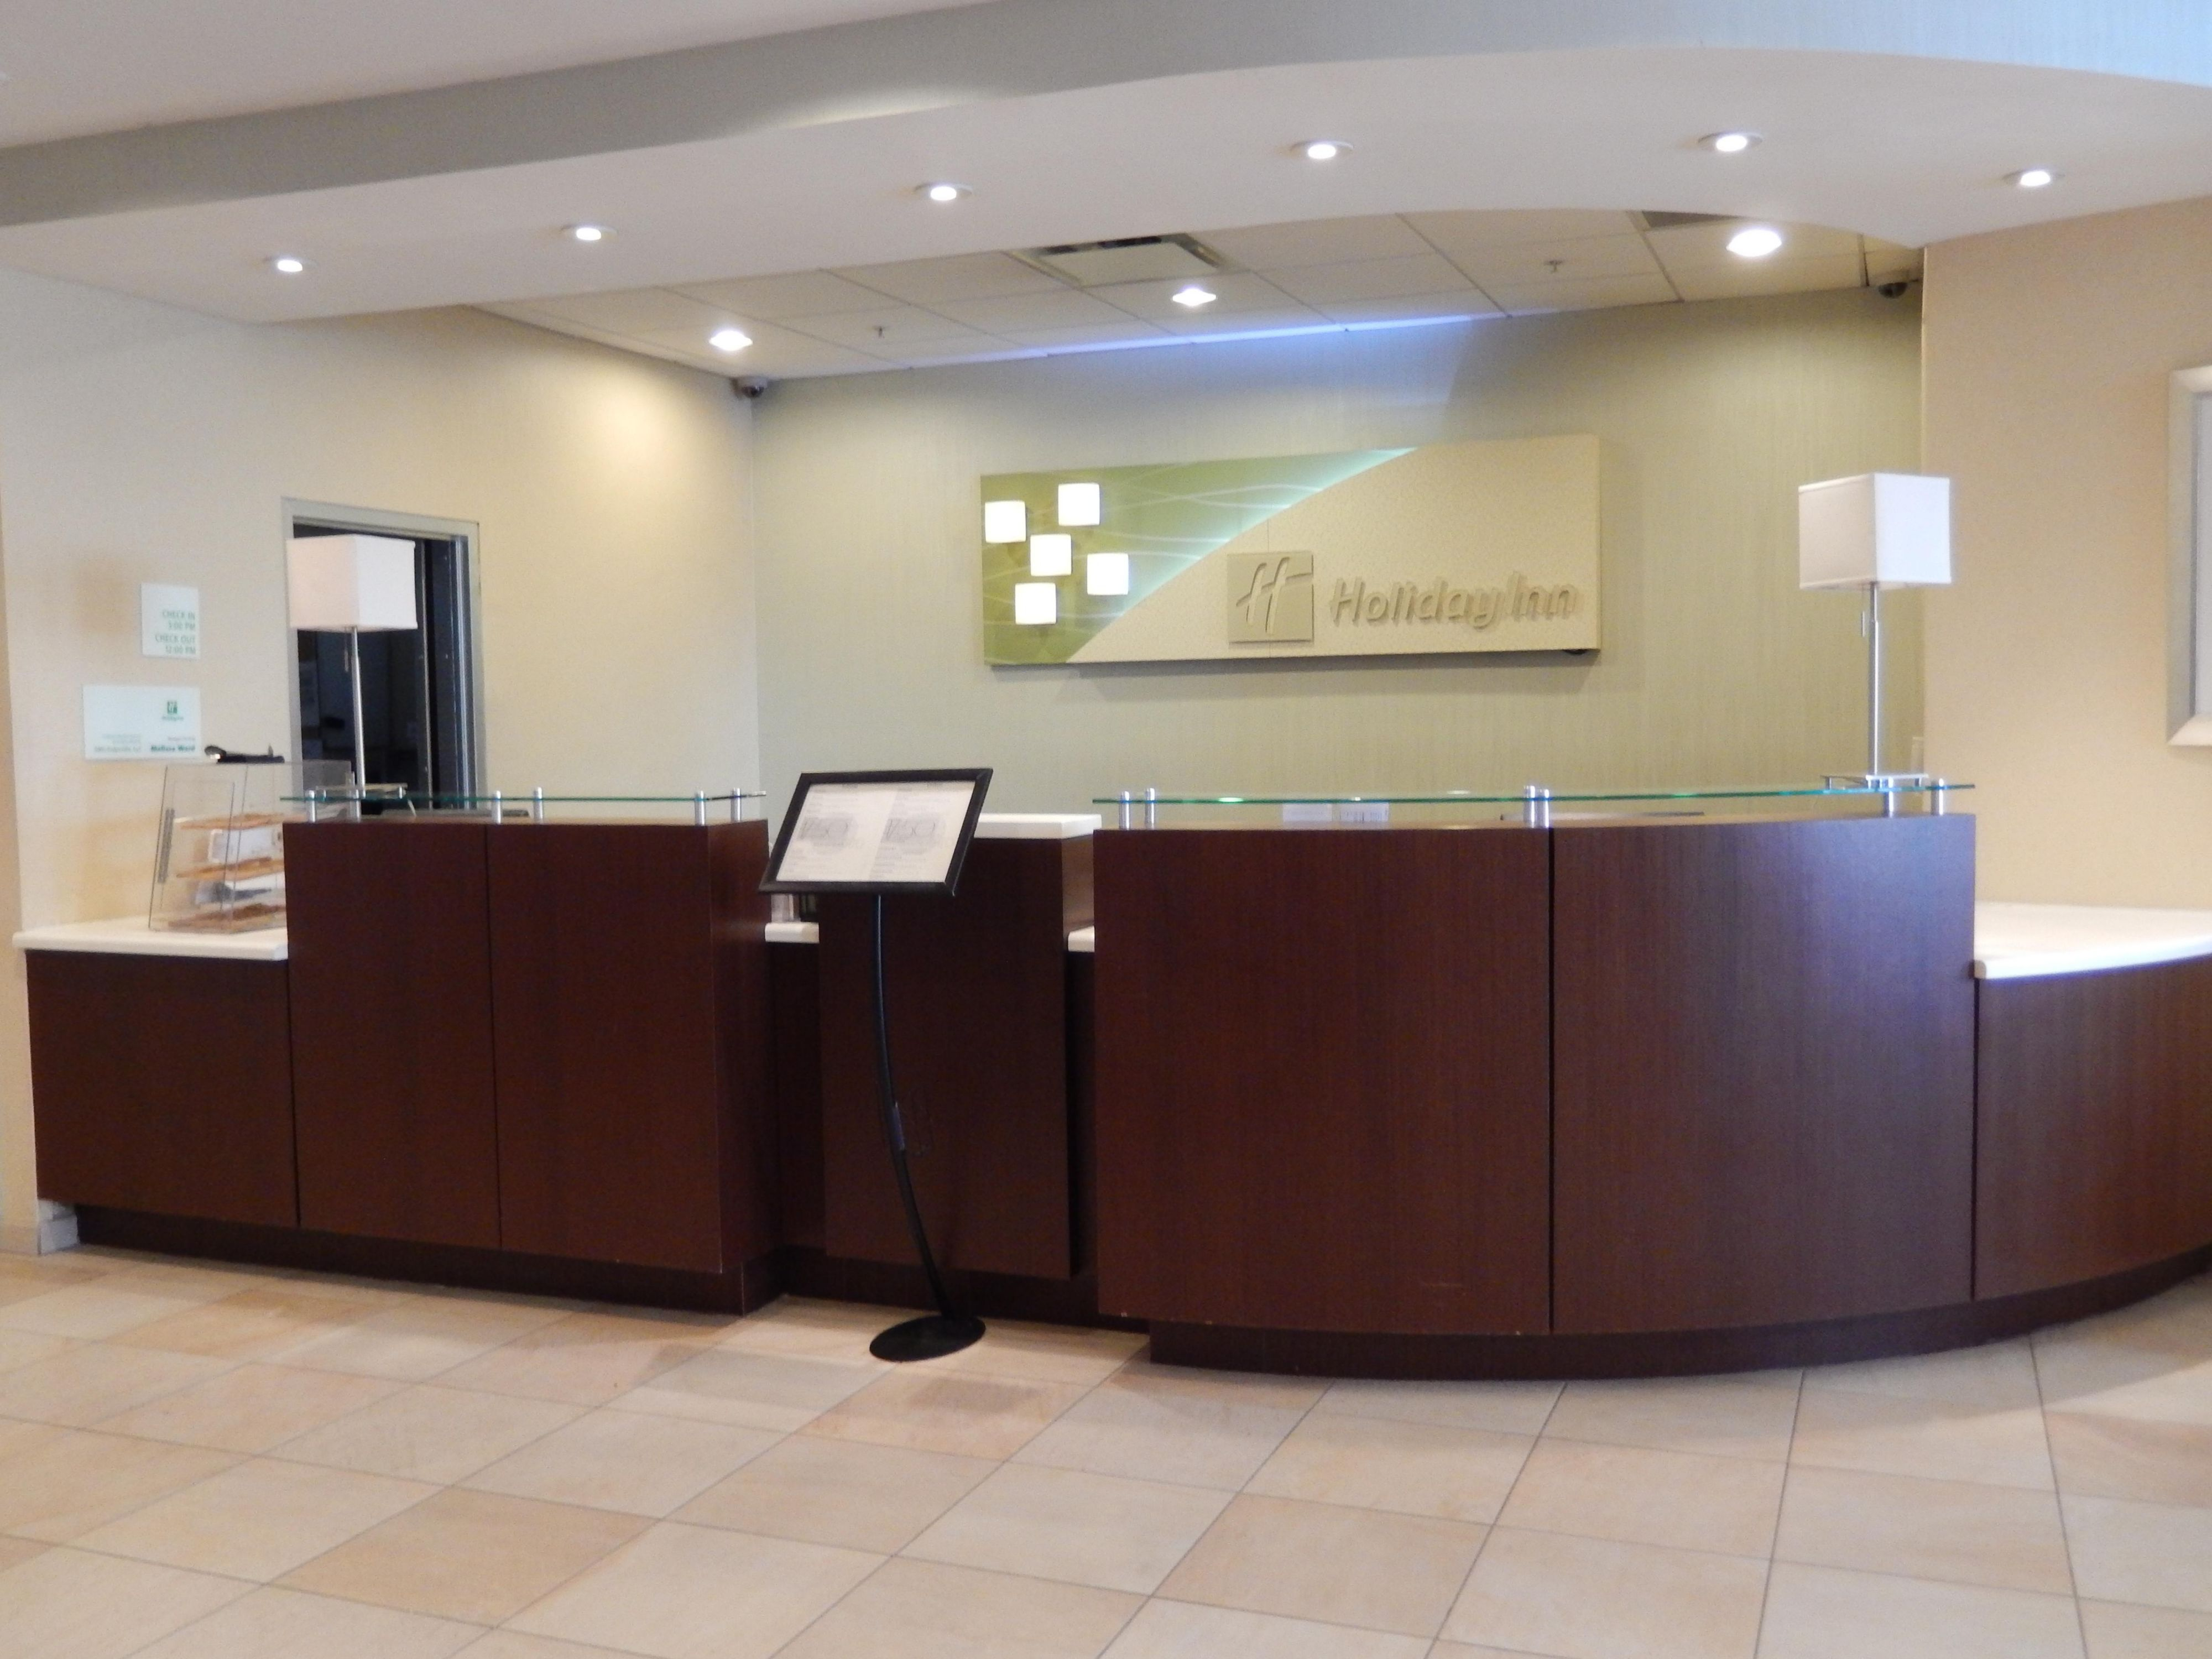 Our front desk is open 24 hours a day to assist you!